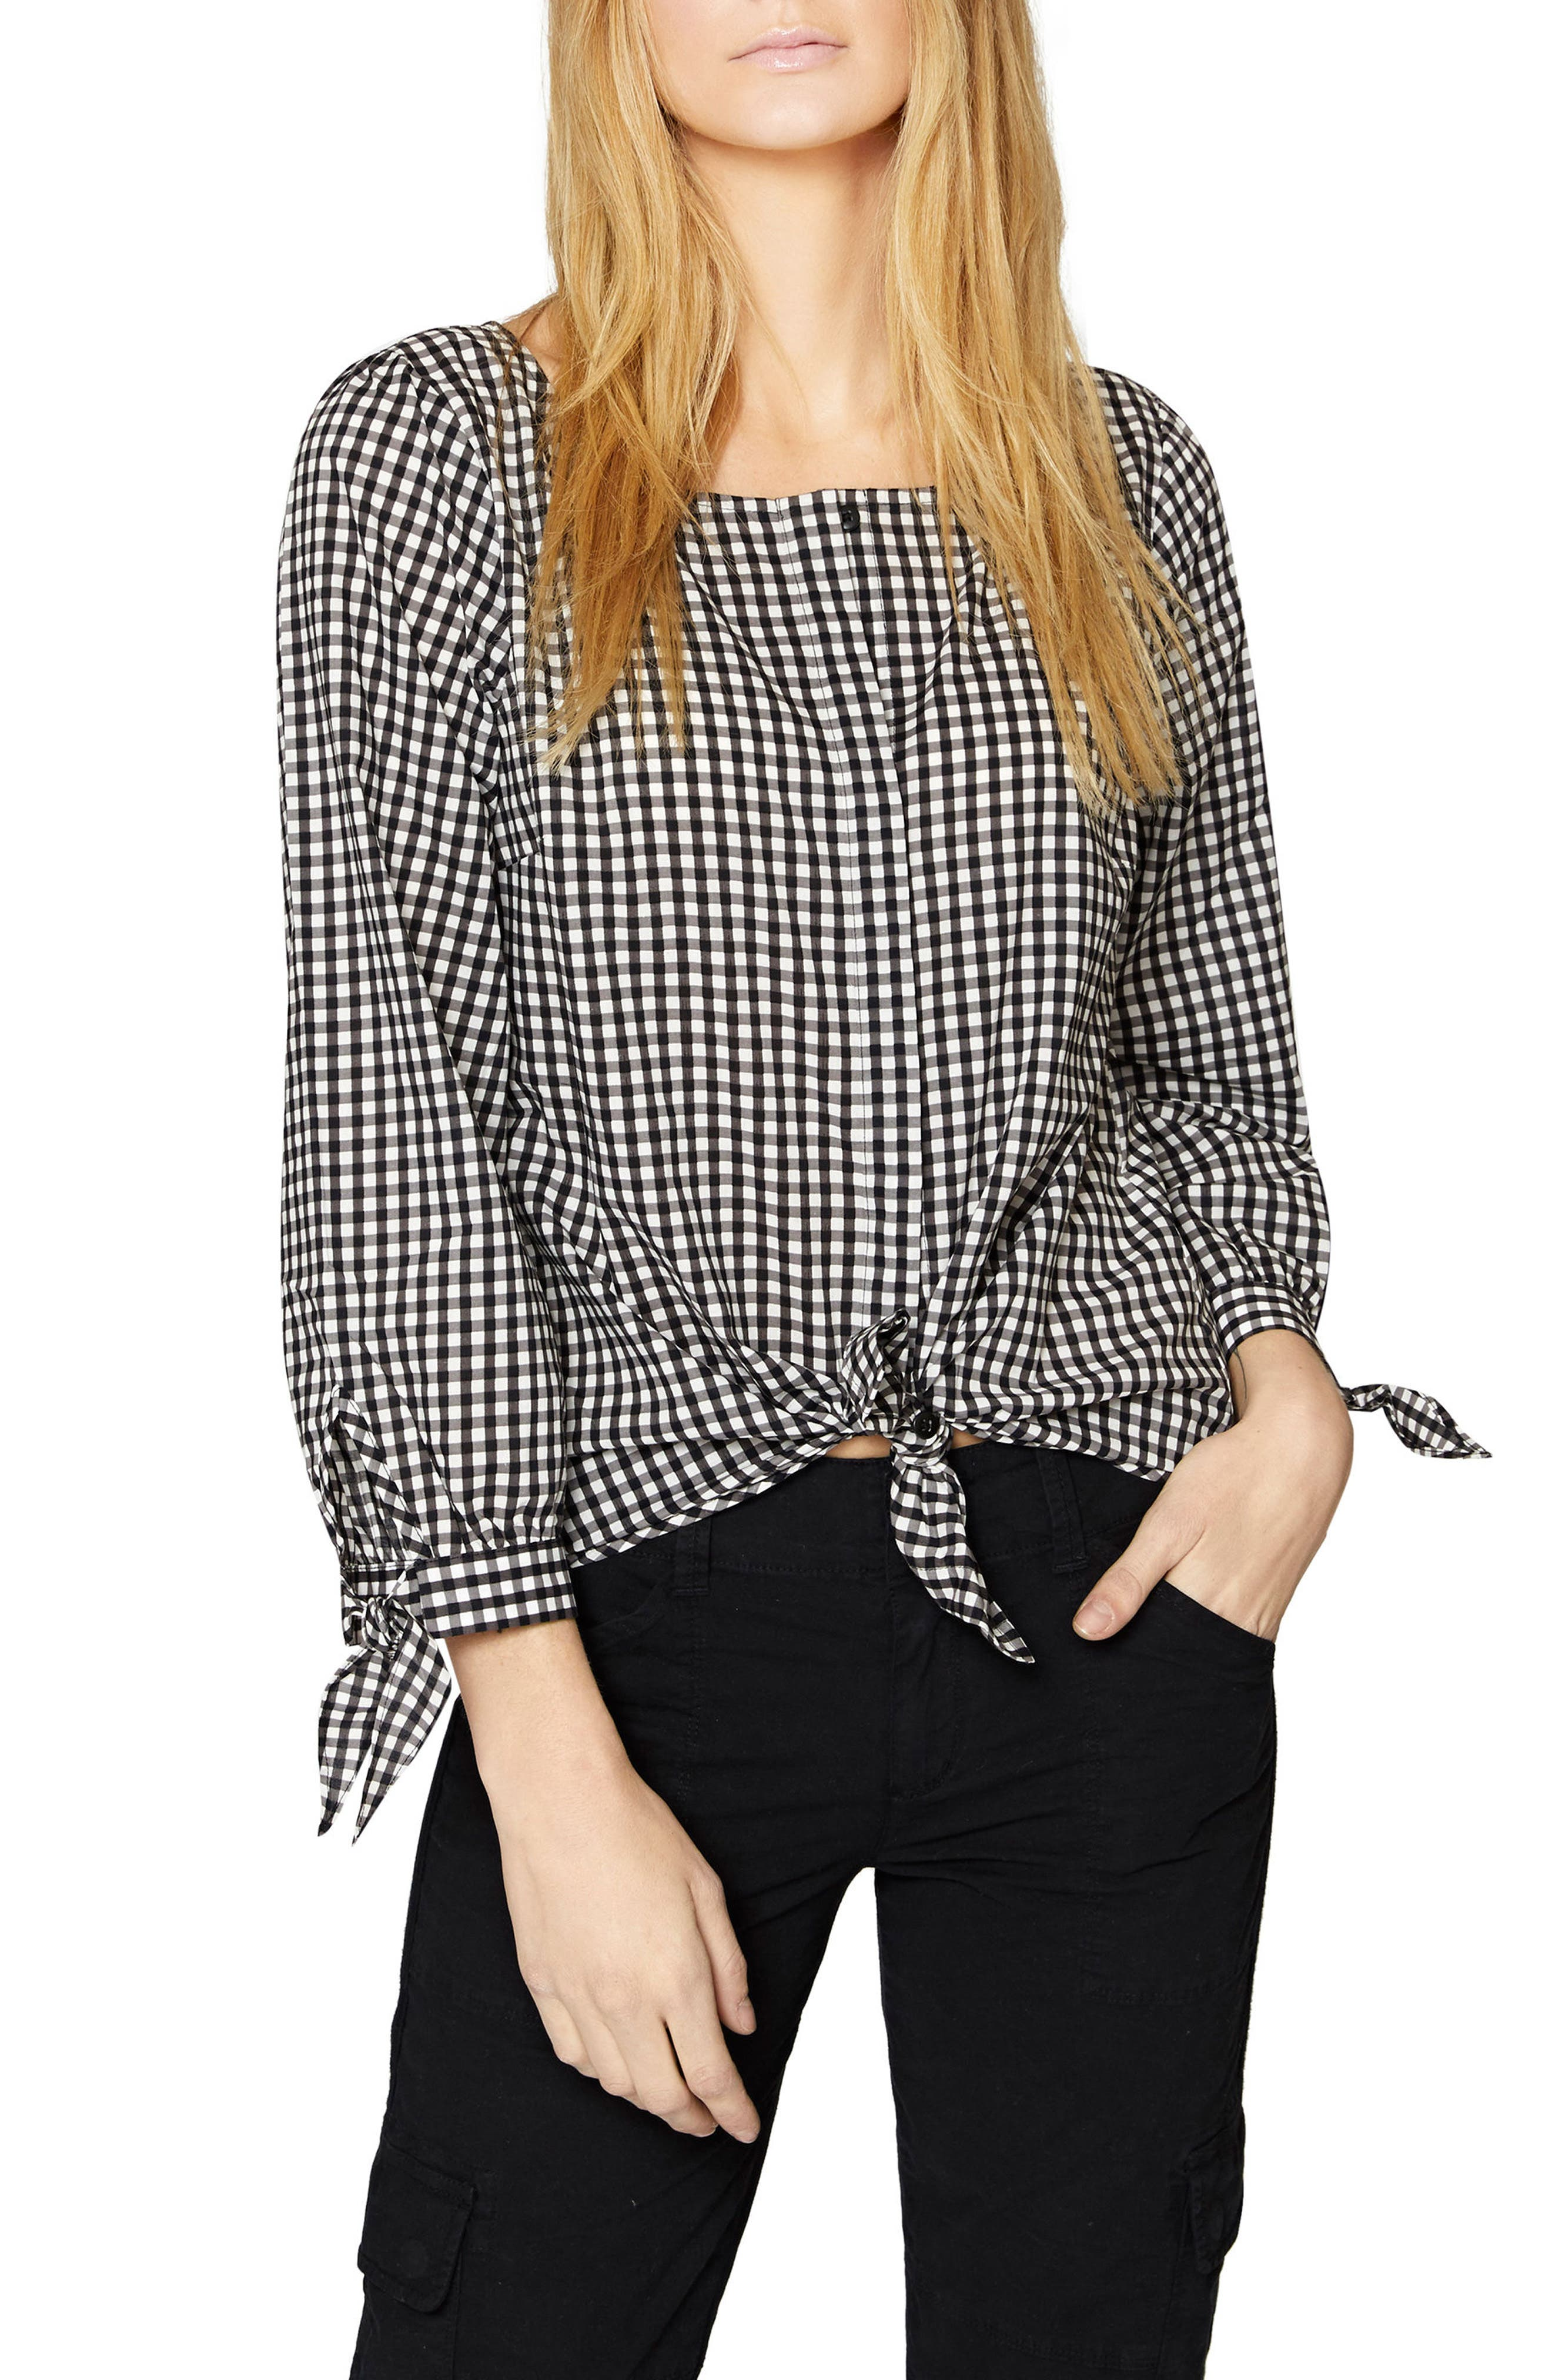 Madie Tie Sleeve Blouse,                         Main,                         color, Bistro Check